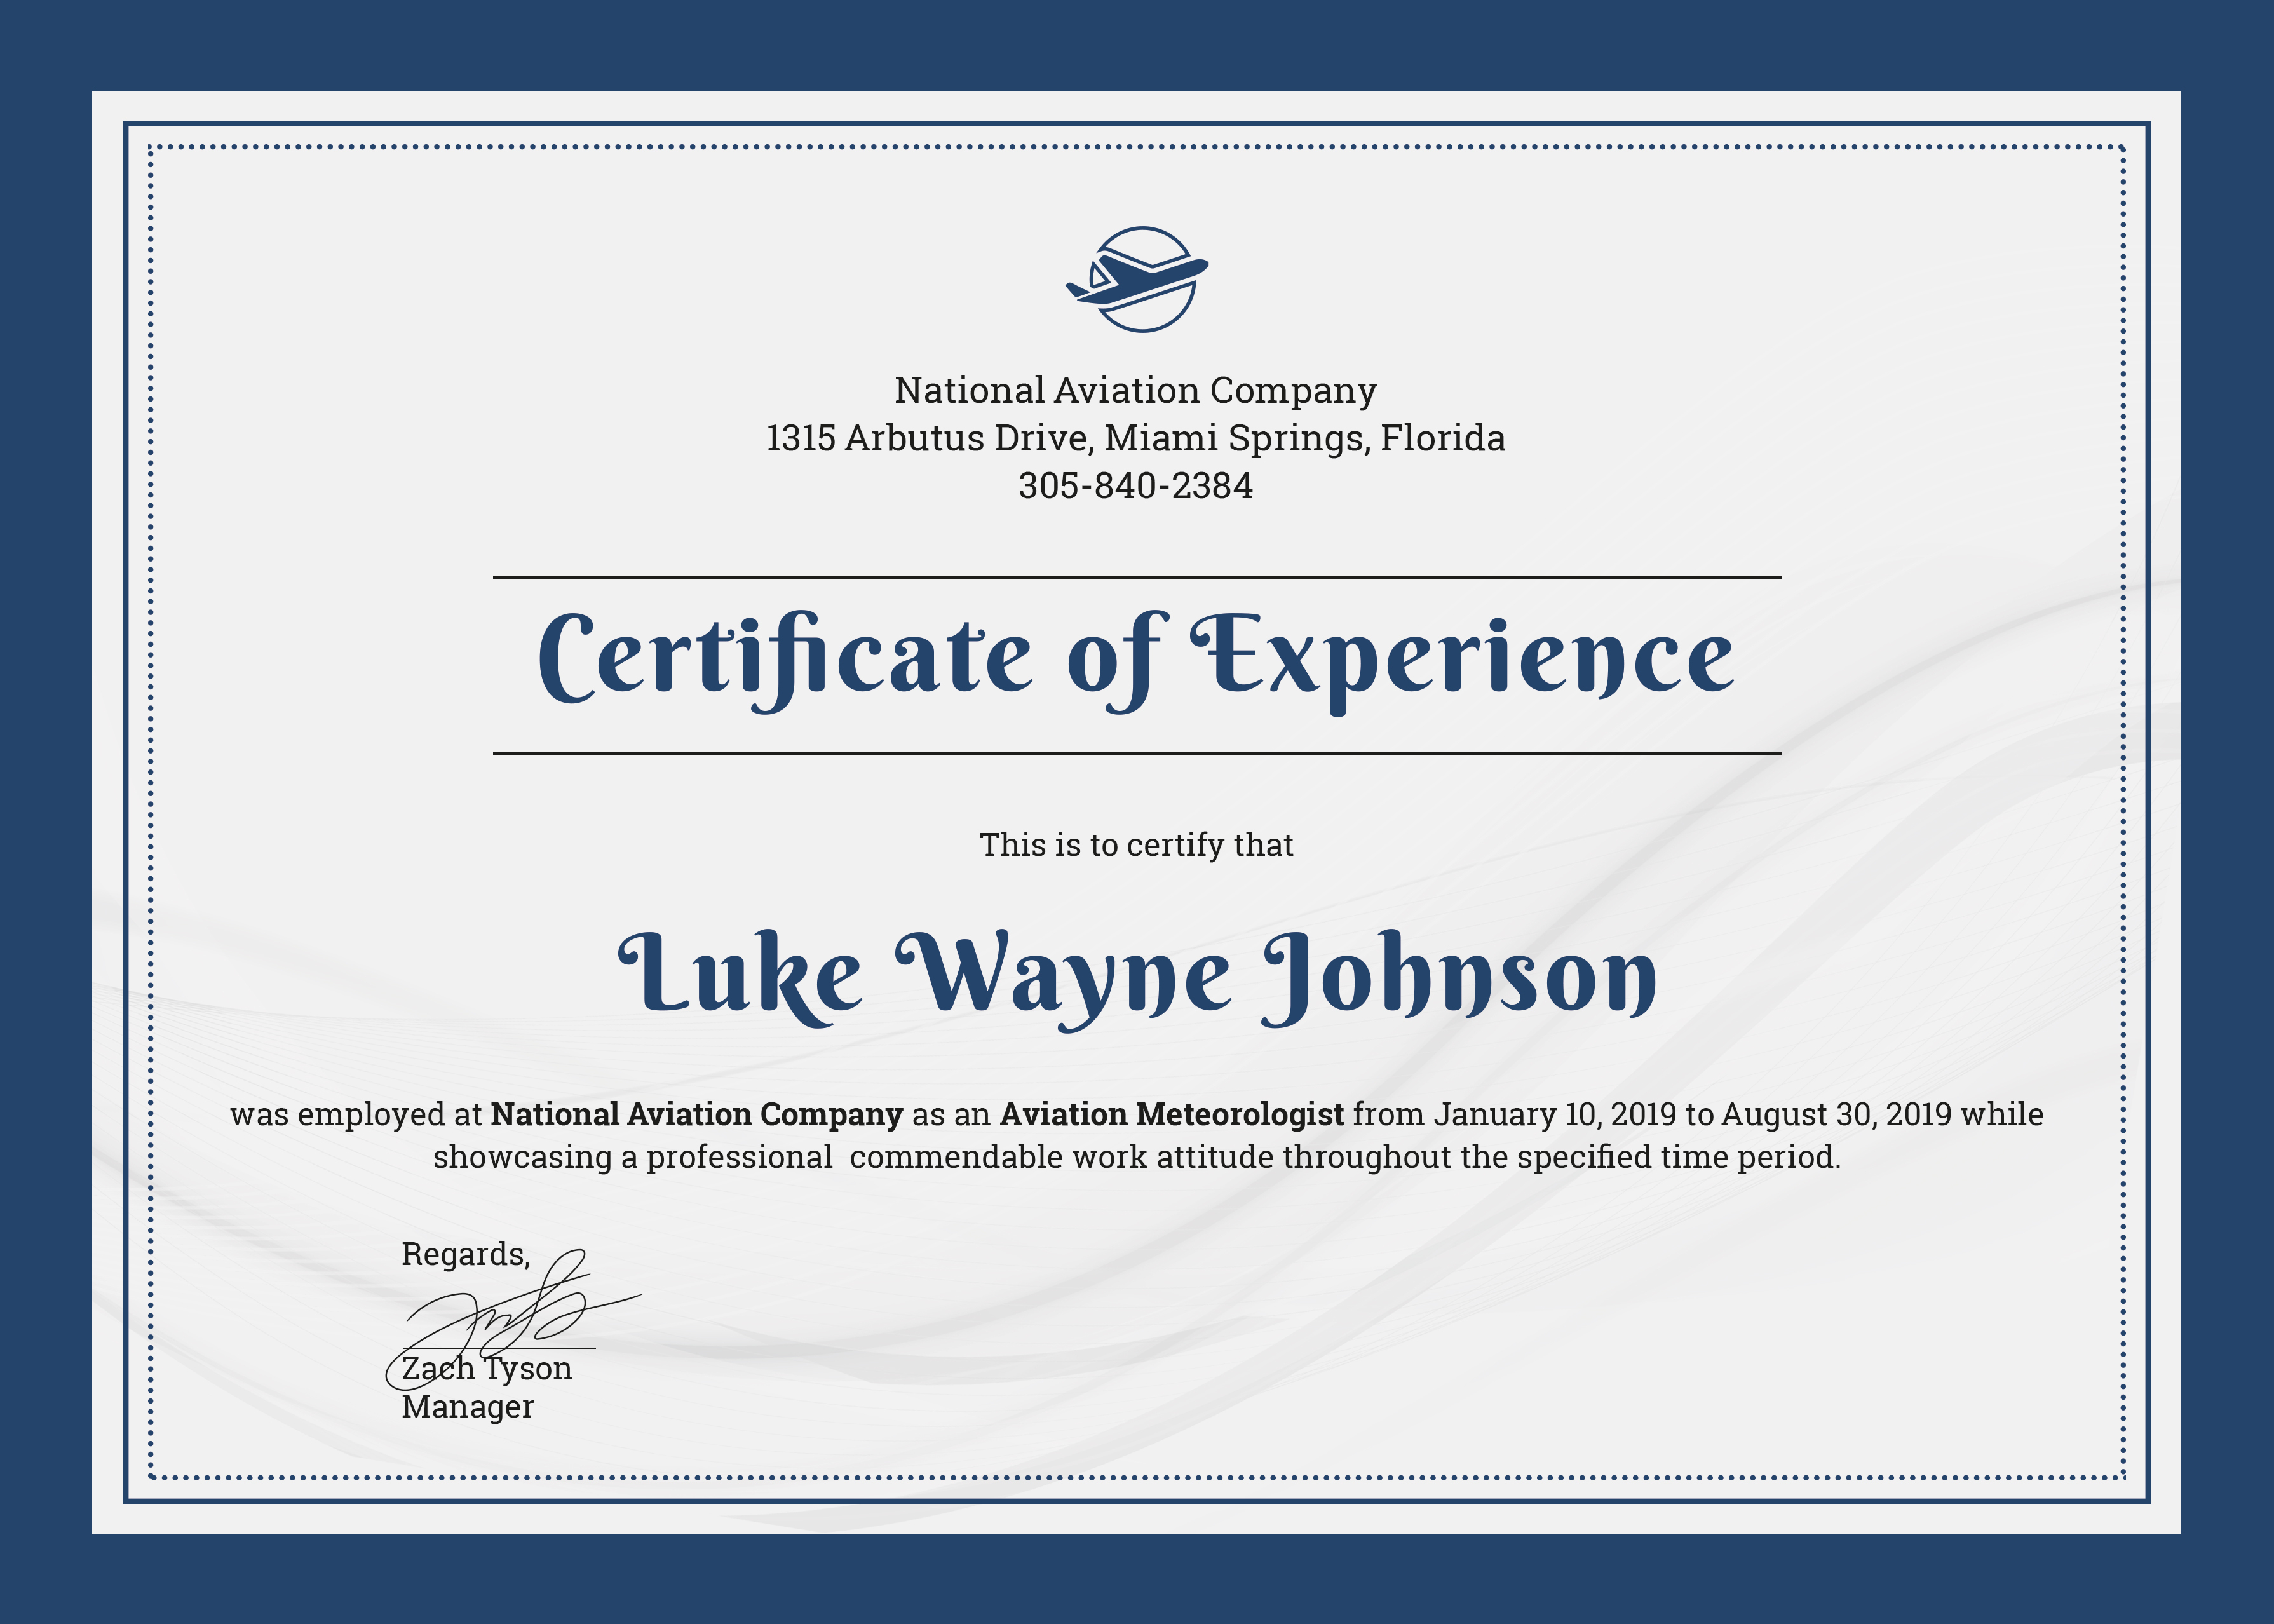 Certificate of Experience Sample